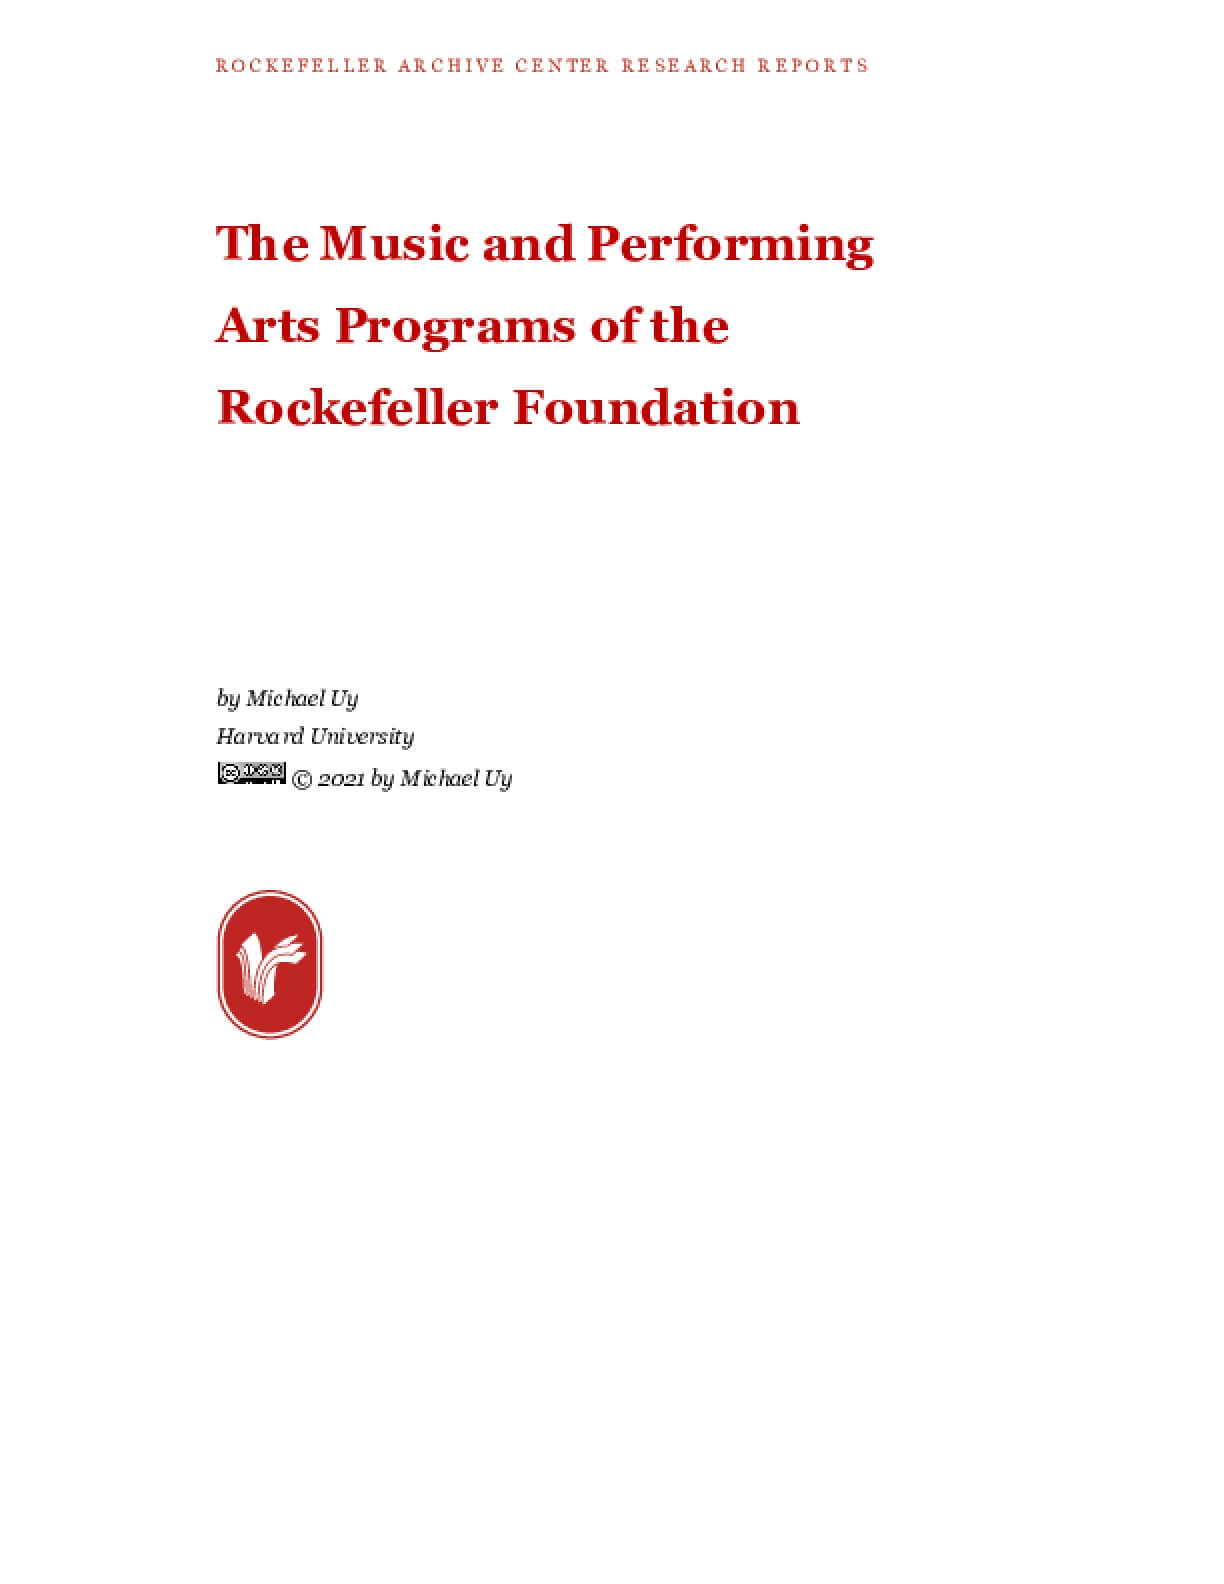 The Music and Performing Arts Programs of the Rockefeller Foundation